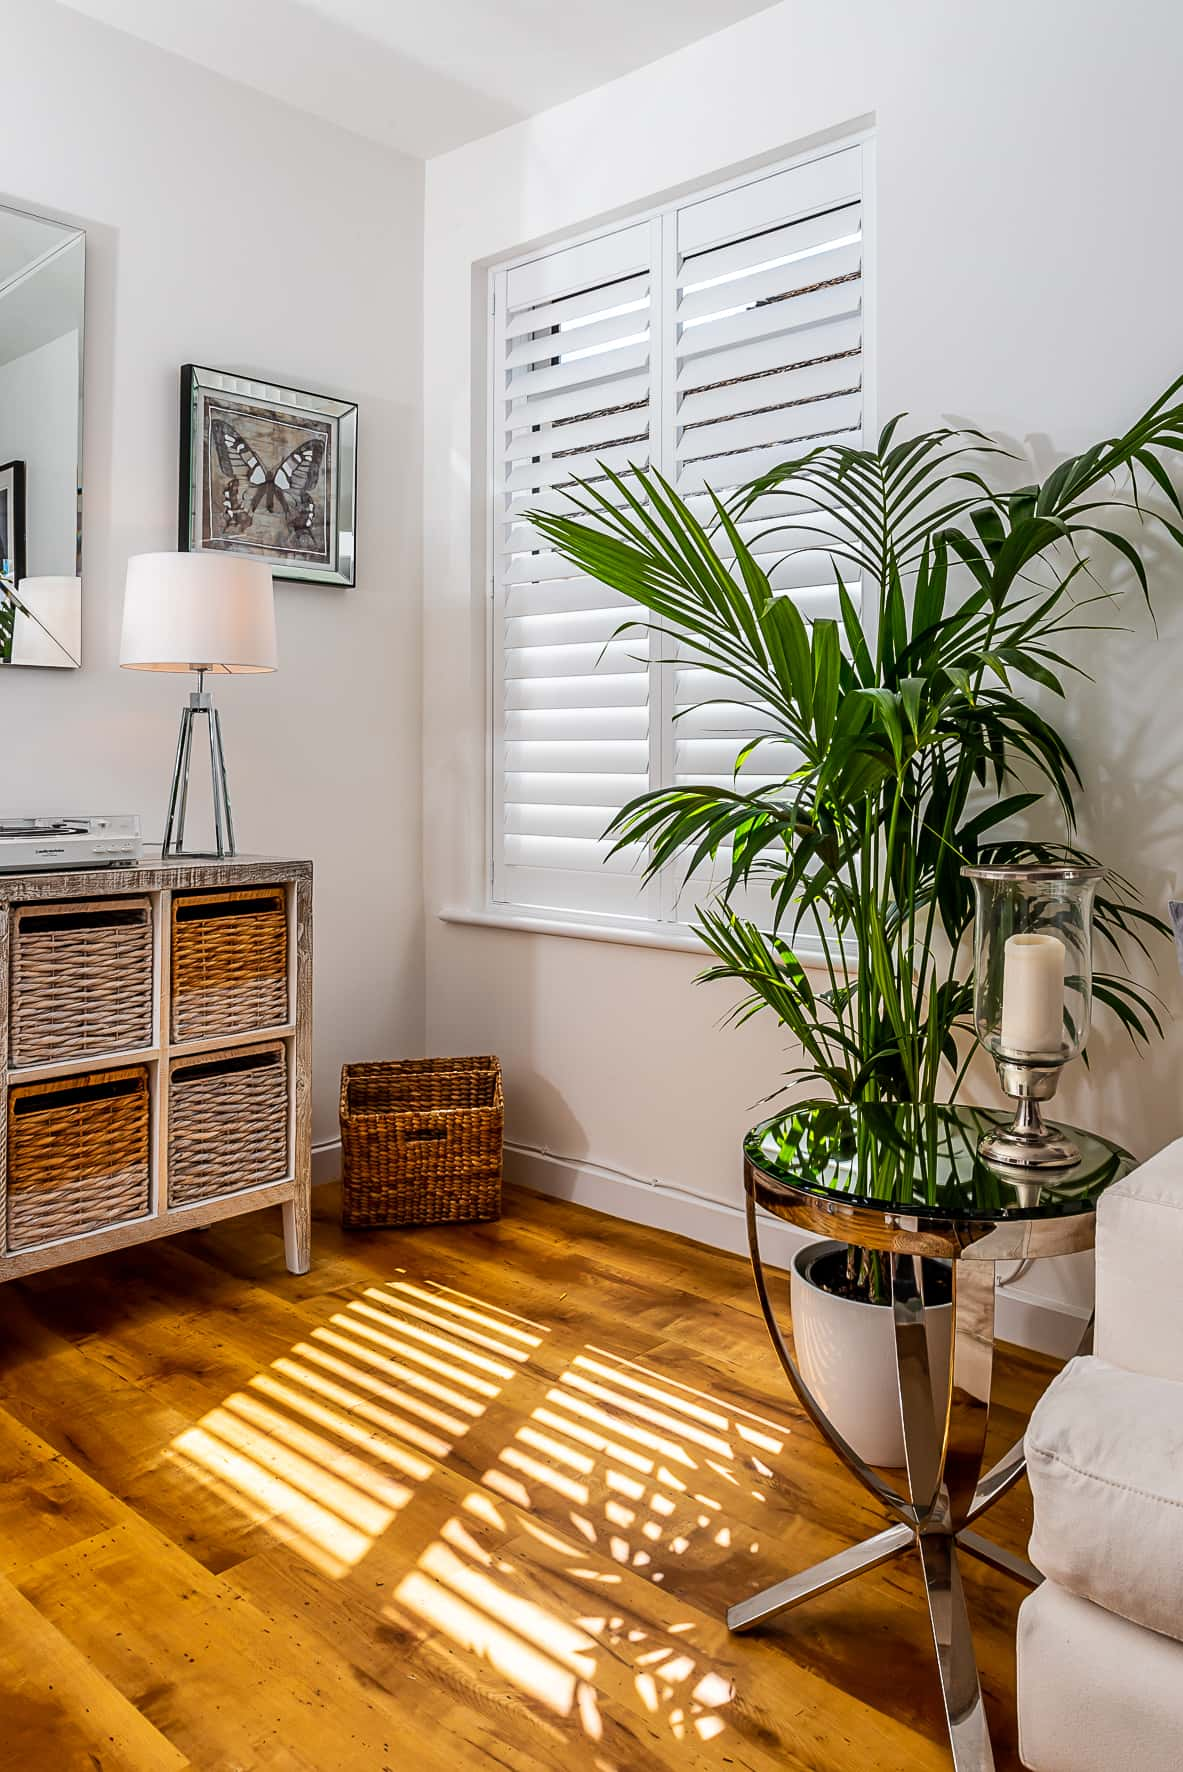 Shutters in the Home from Just Shutters